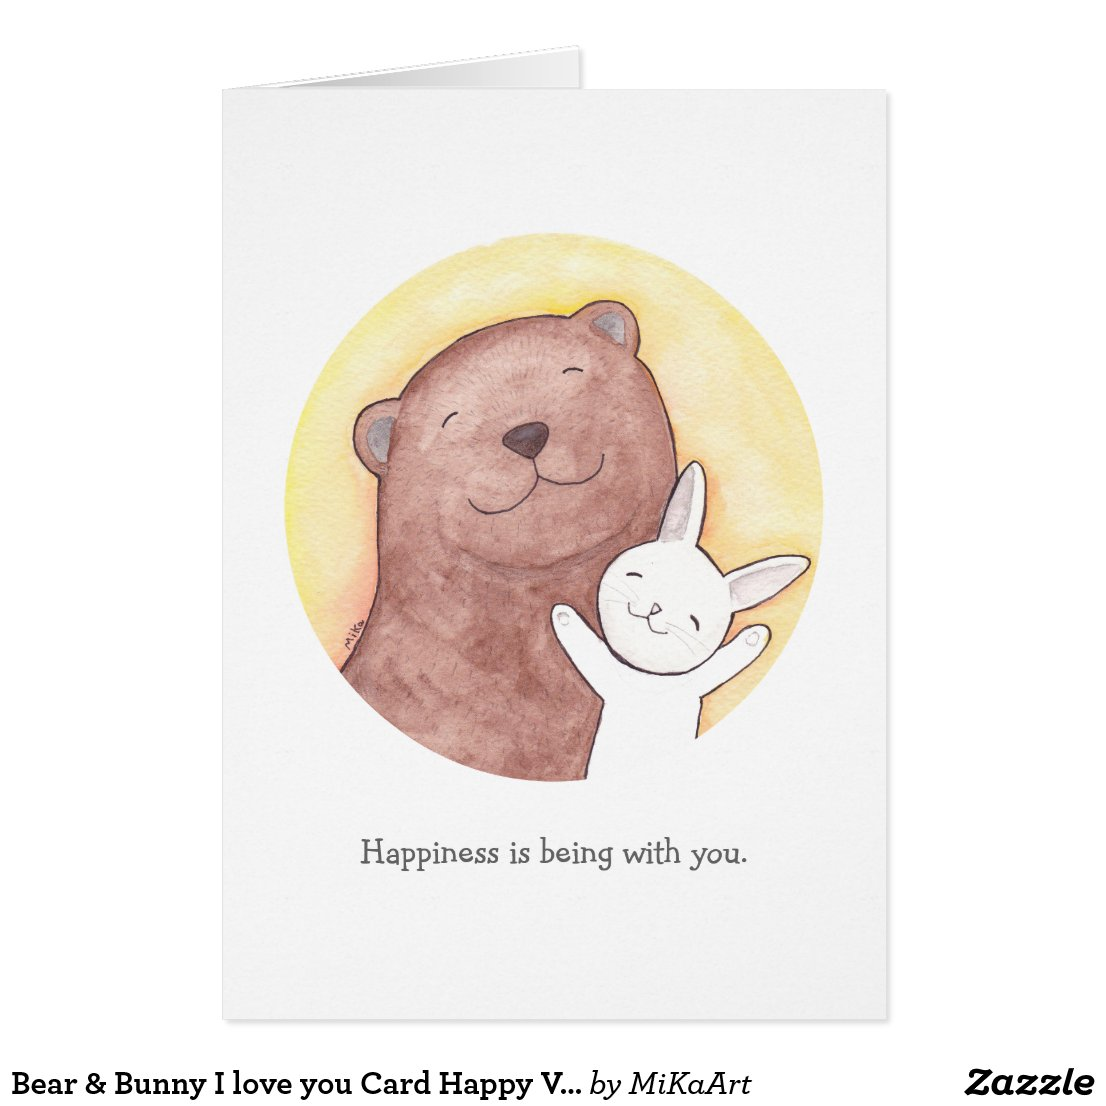 Bear & Bunny I love you Card Happy Valentine Card